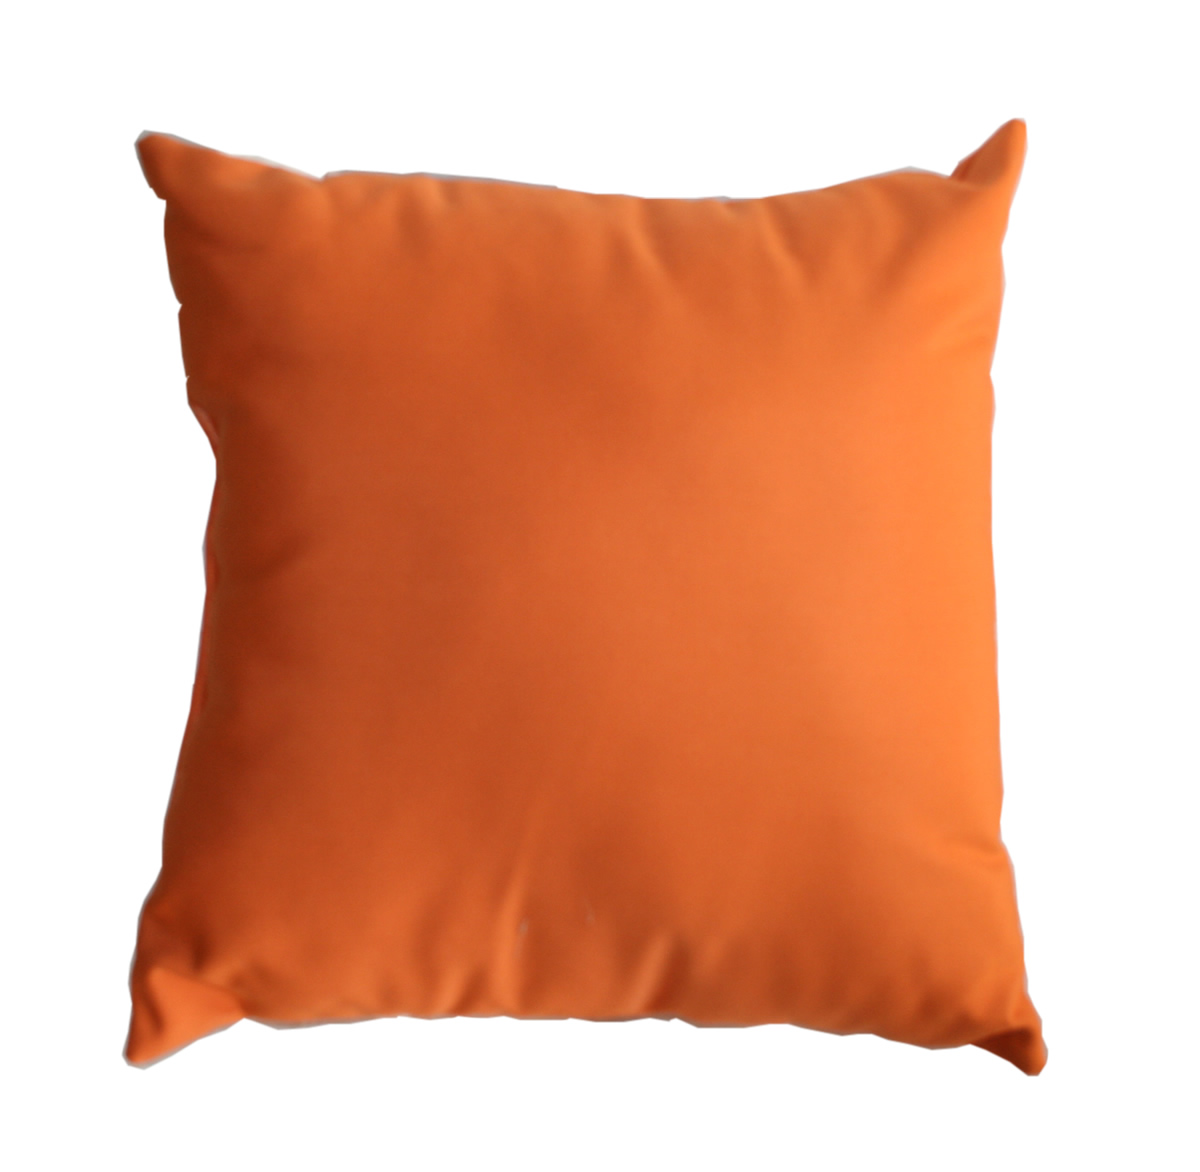 Sunbrella Indoor/Outdoor Throw Pillow